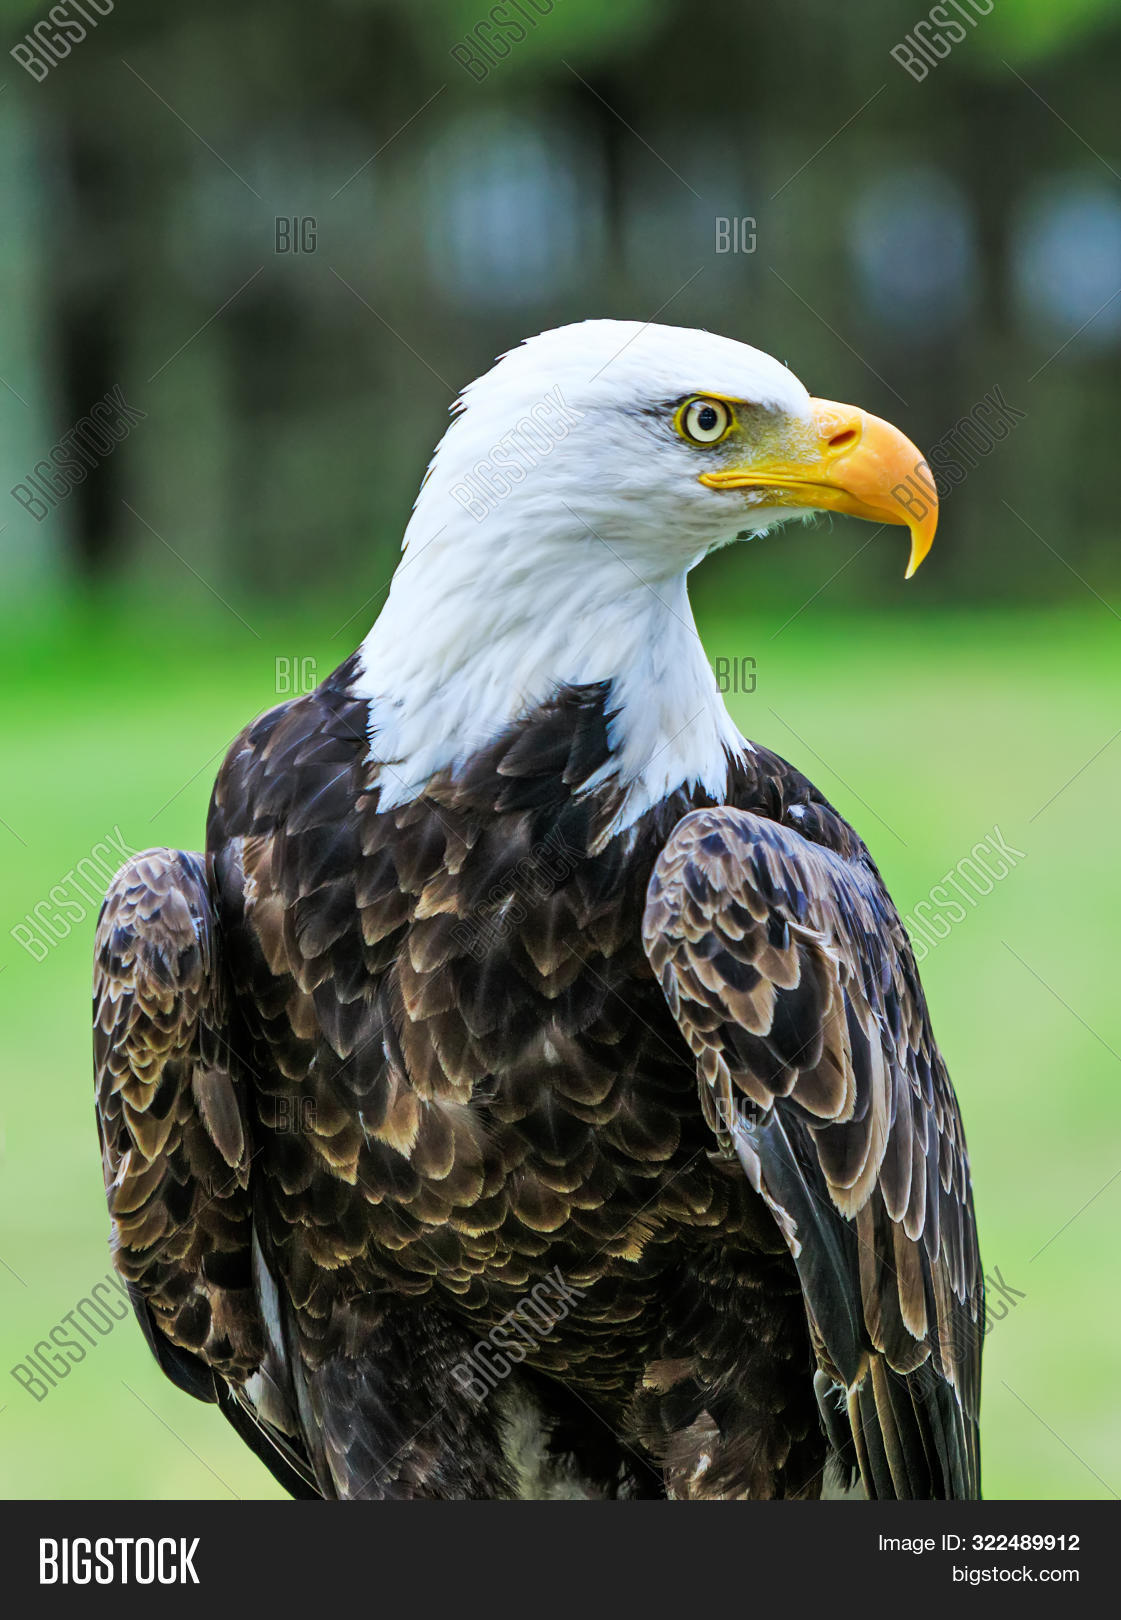 Bald Eagle With Colorful Plumage And White Head On Green Background. Amazing Portrait Of American Ba